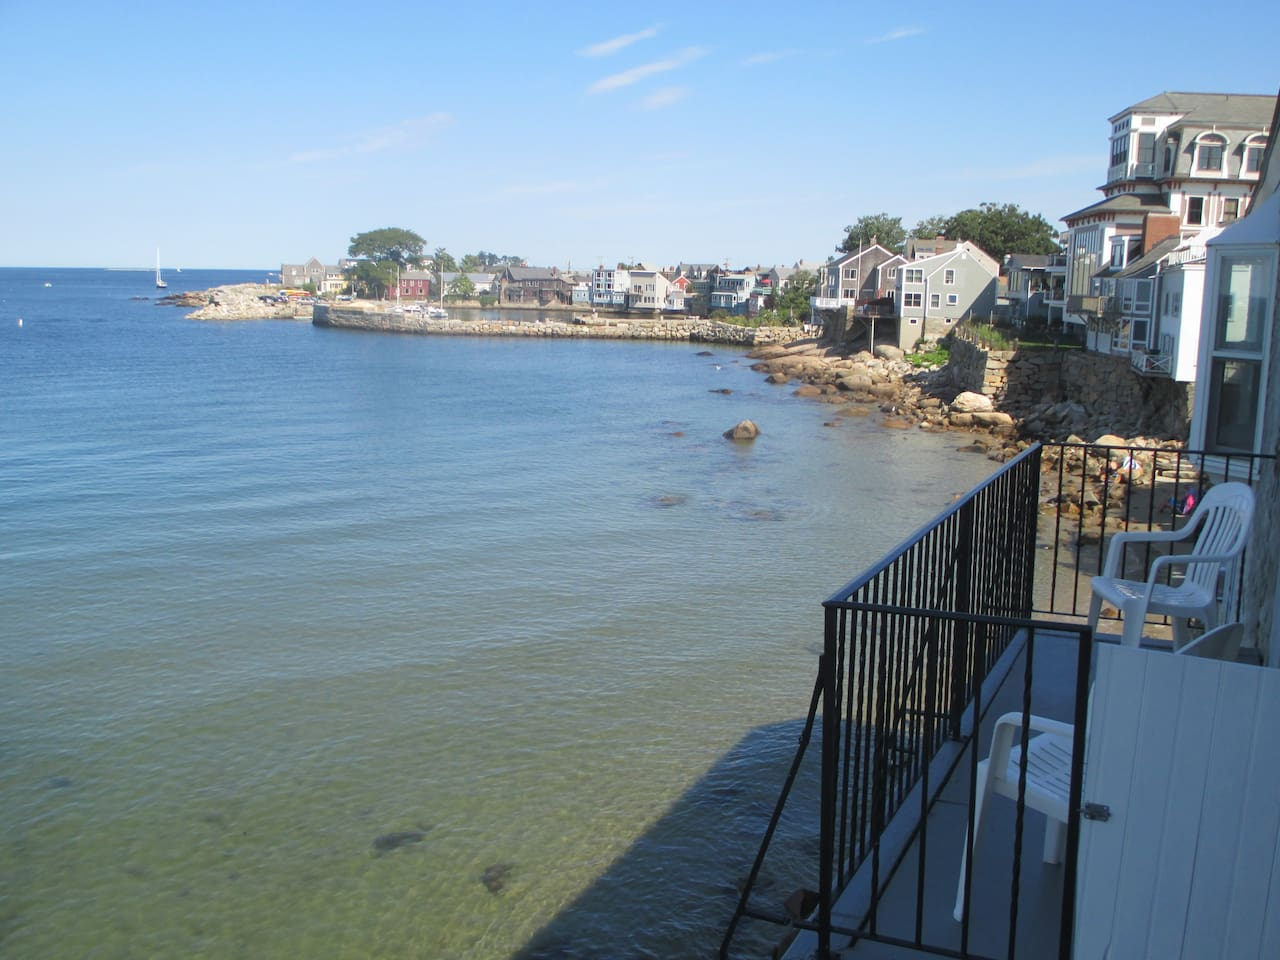 Looking toward Bearskin Neck from deck